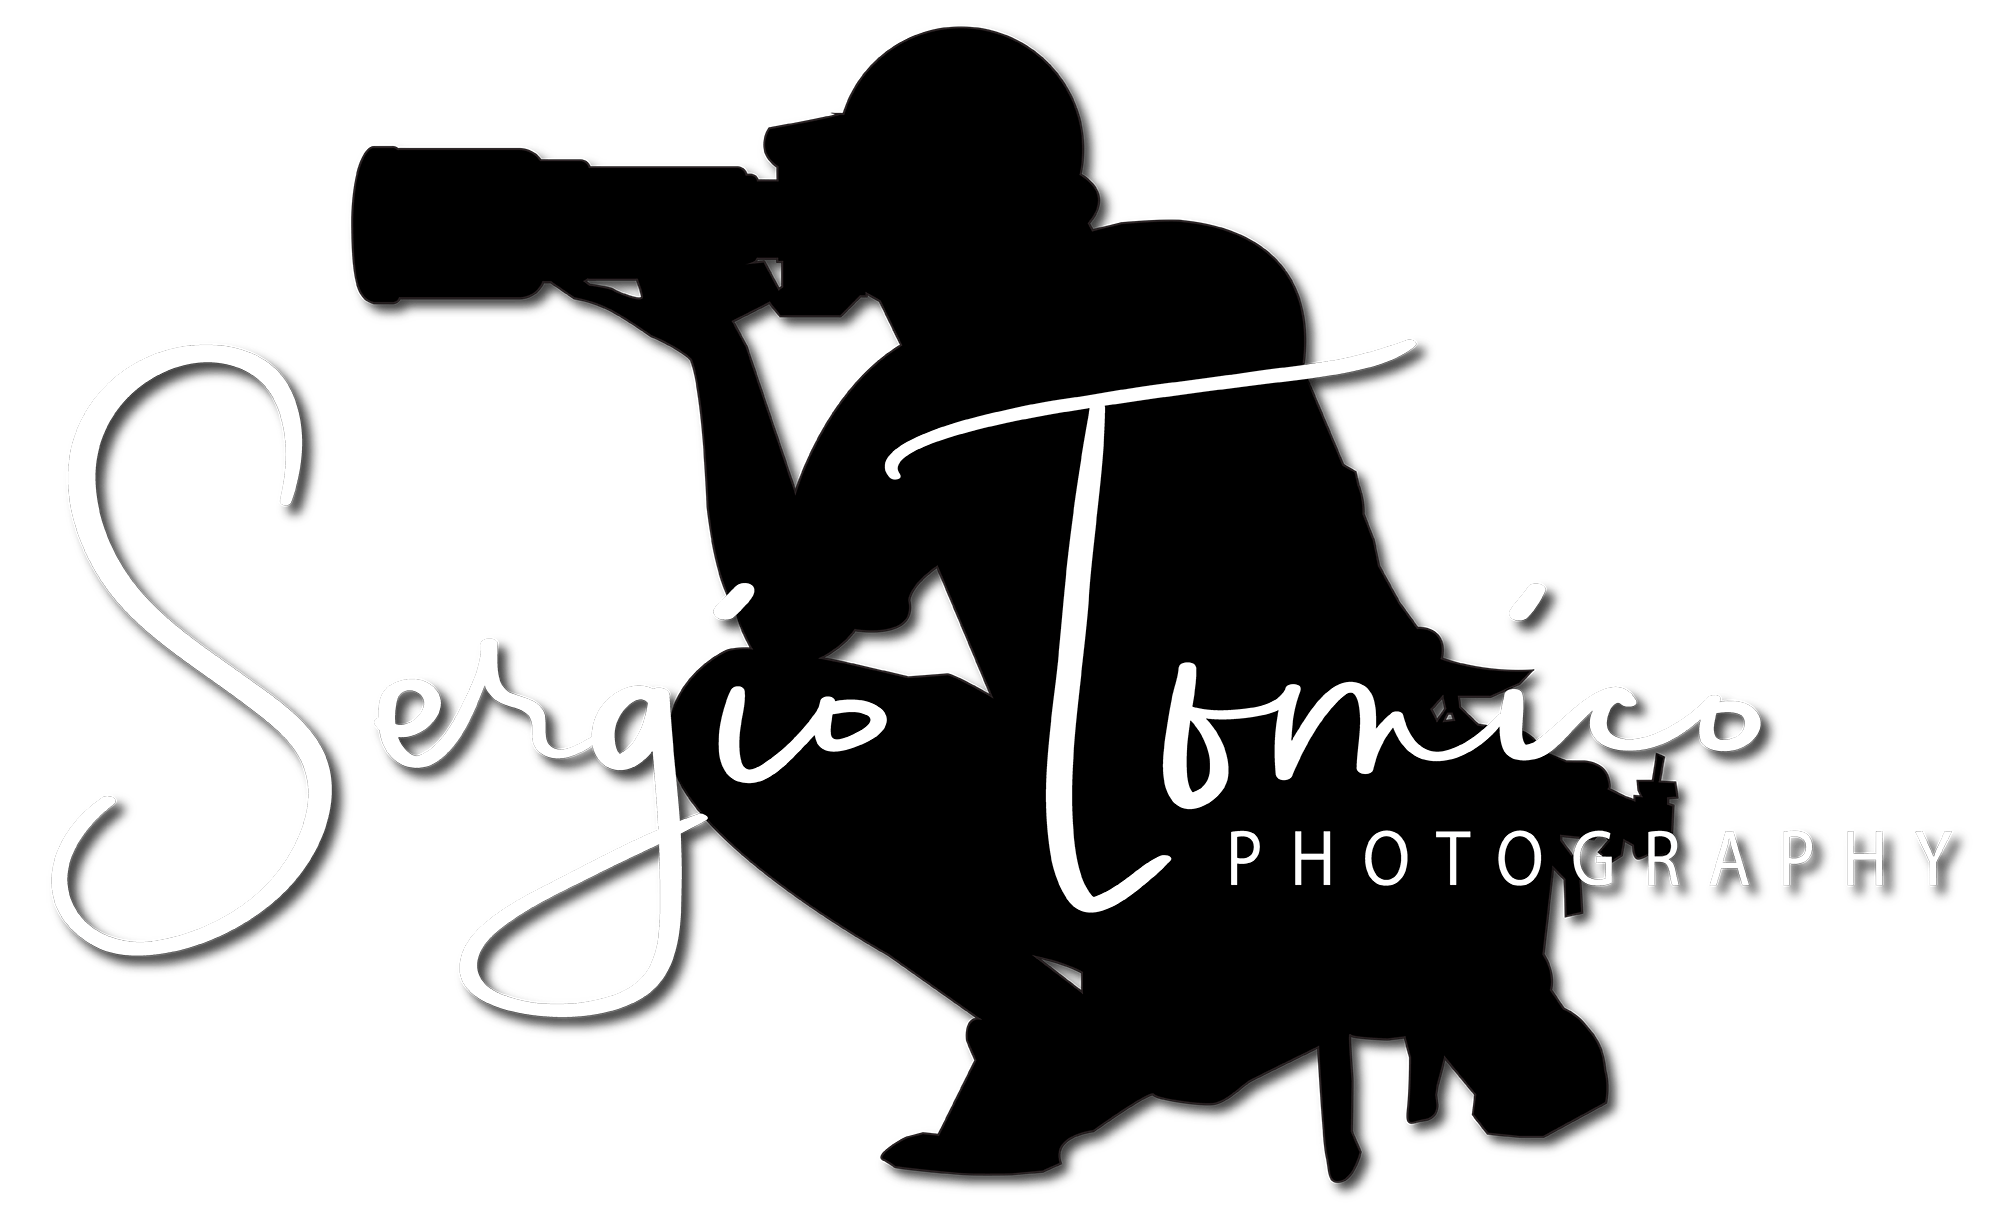 Sergio Tomico - Photography